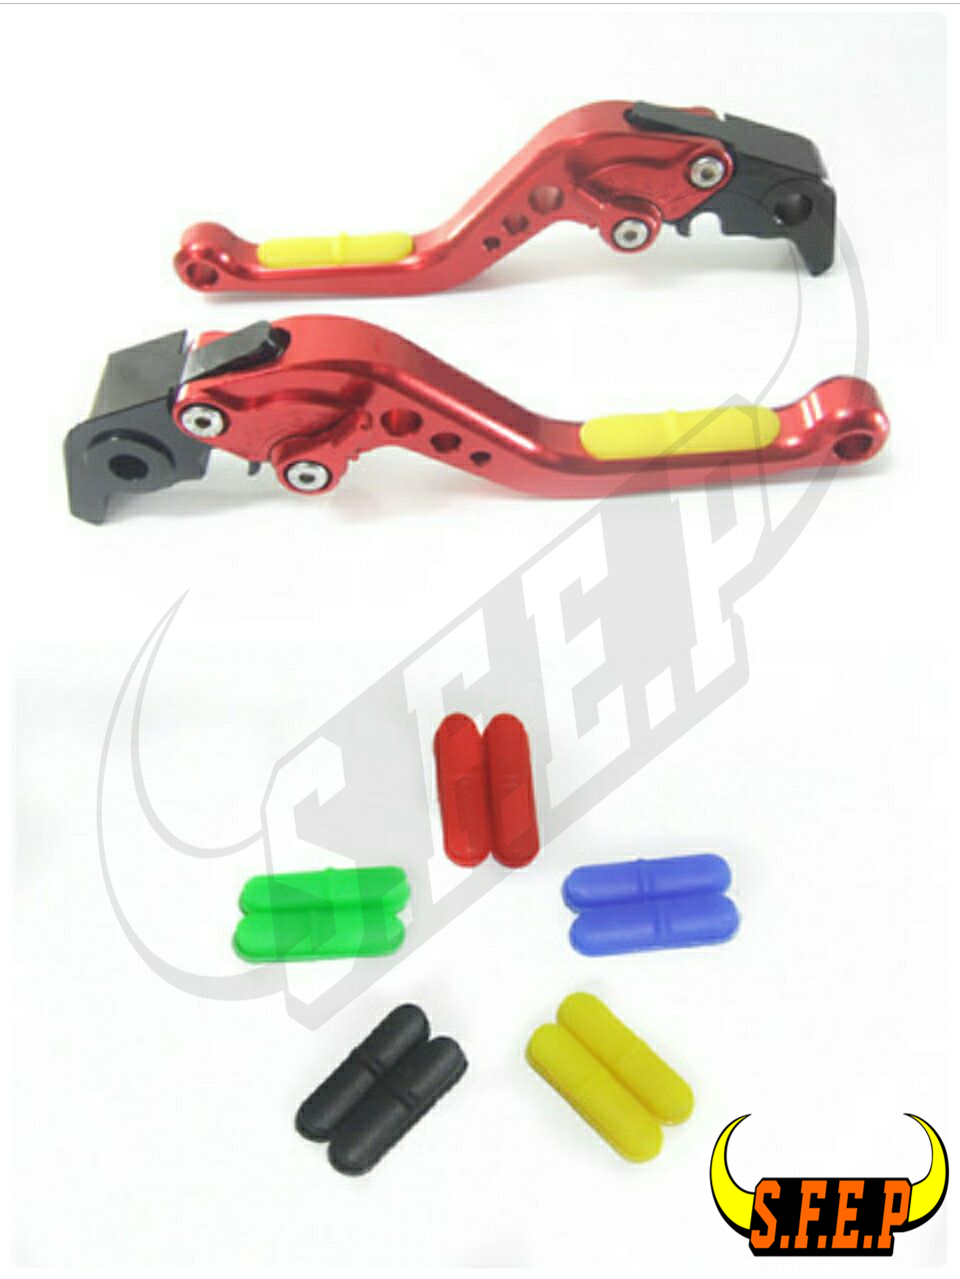 CNC Adjustable Motorcycle Brake and Clutch Levers with Anti-Slip For Ducati 999/S/R 2003-2006